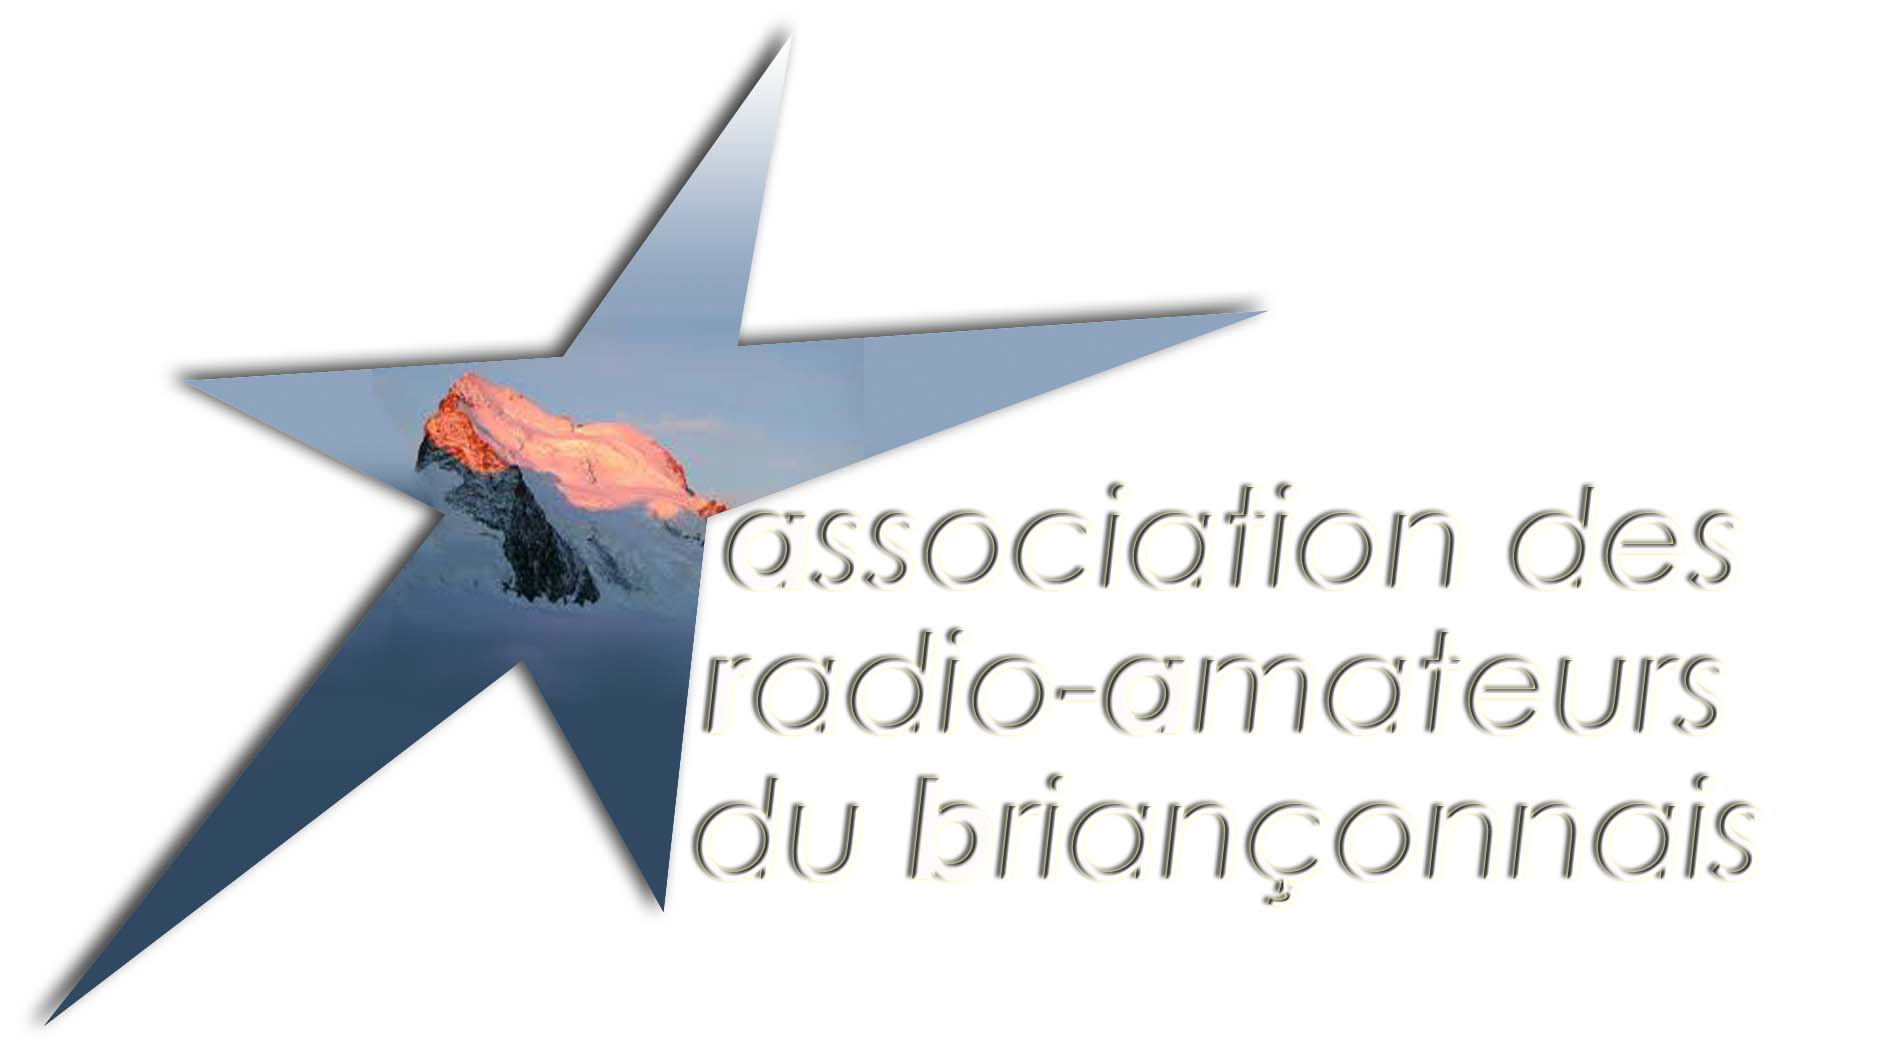 amateurs radio cameroun des Association du